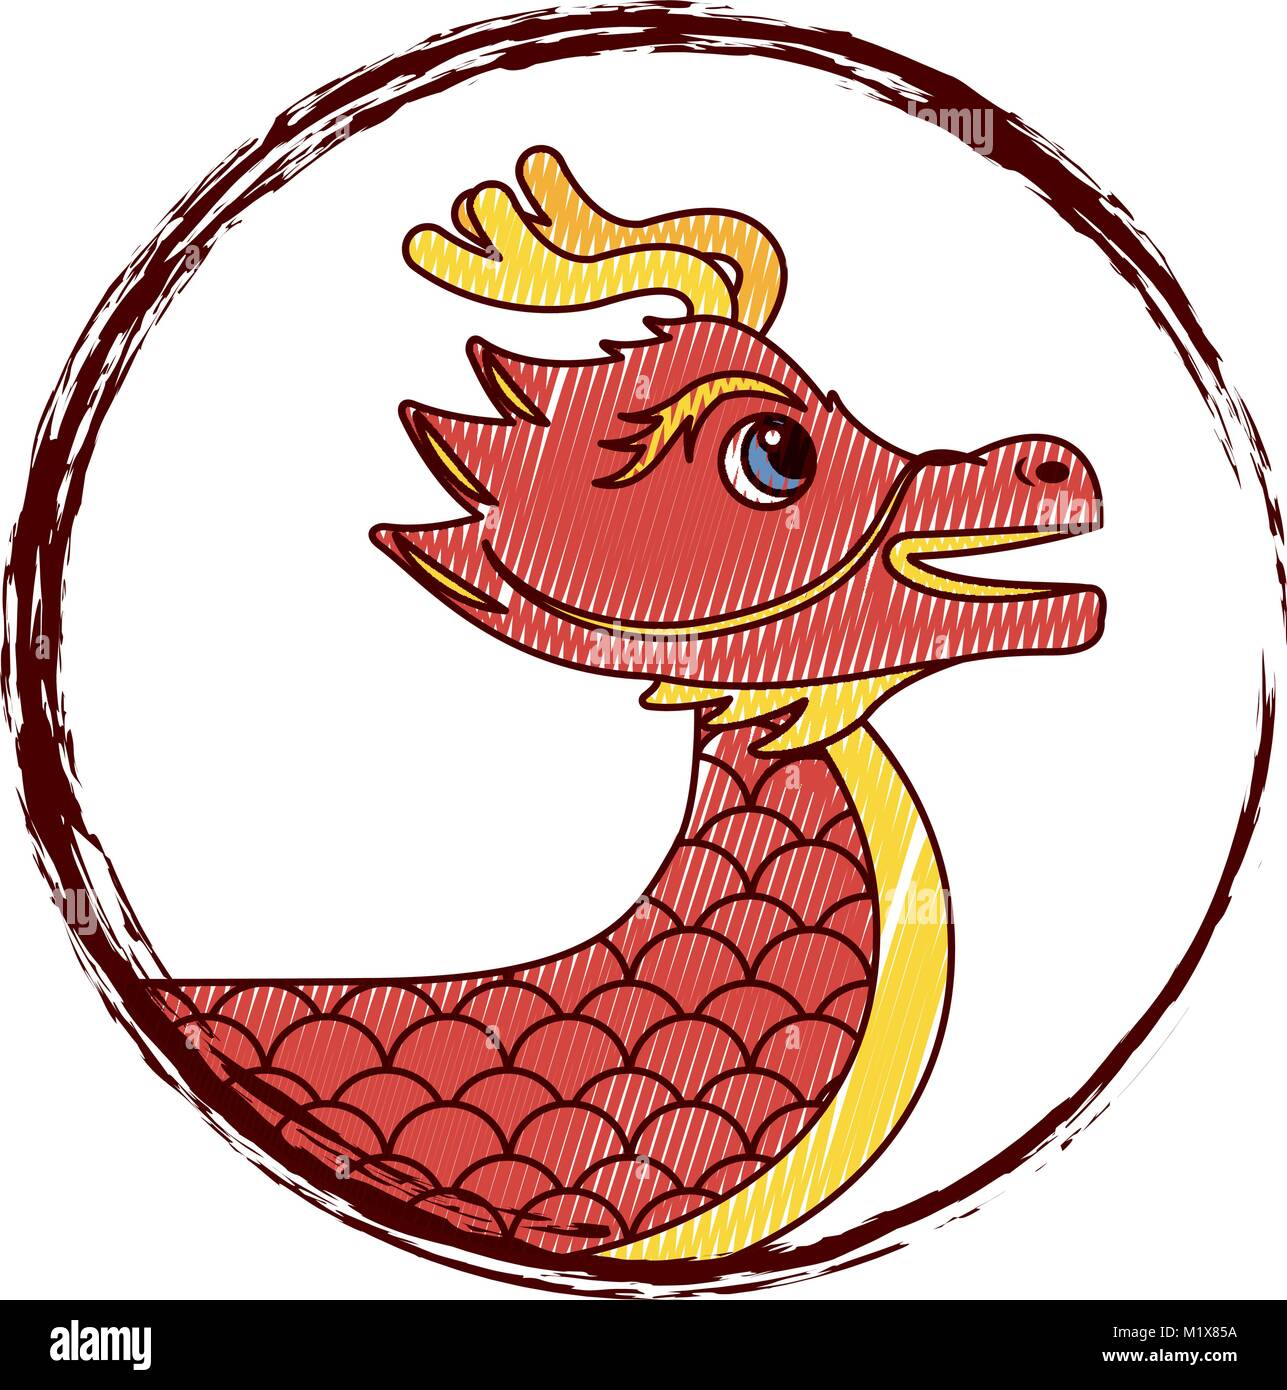 Drawing red chinese dragon symbol stock vector art illustration drawing red chinese dragon symbol biocorpaavc